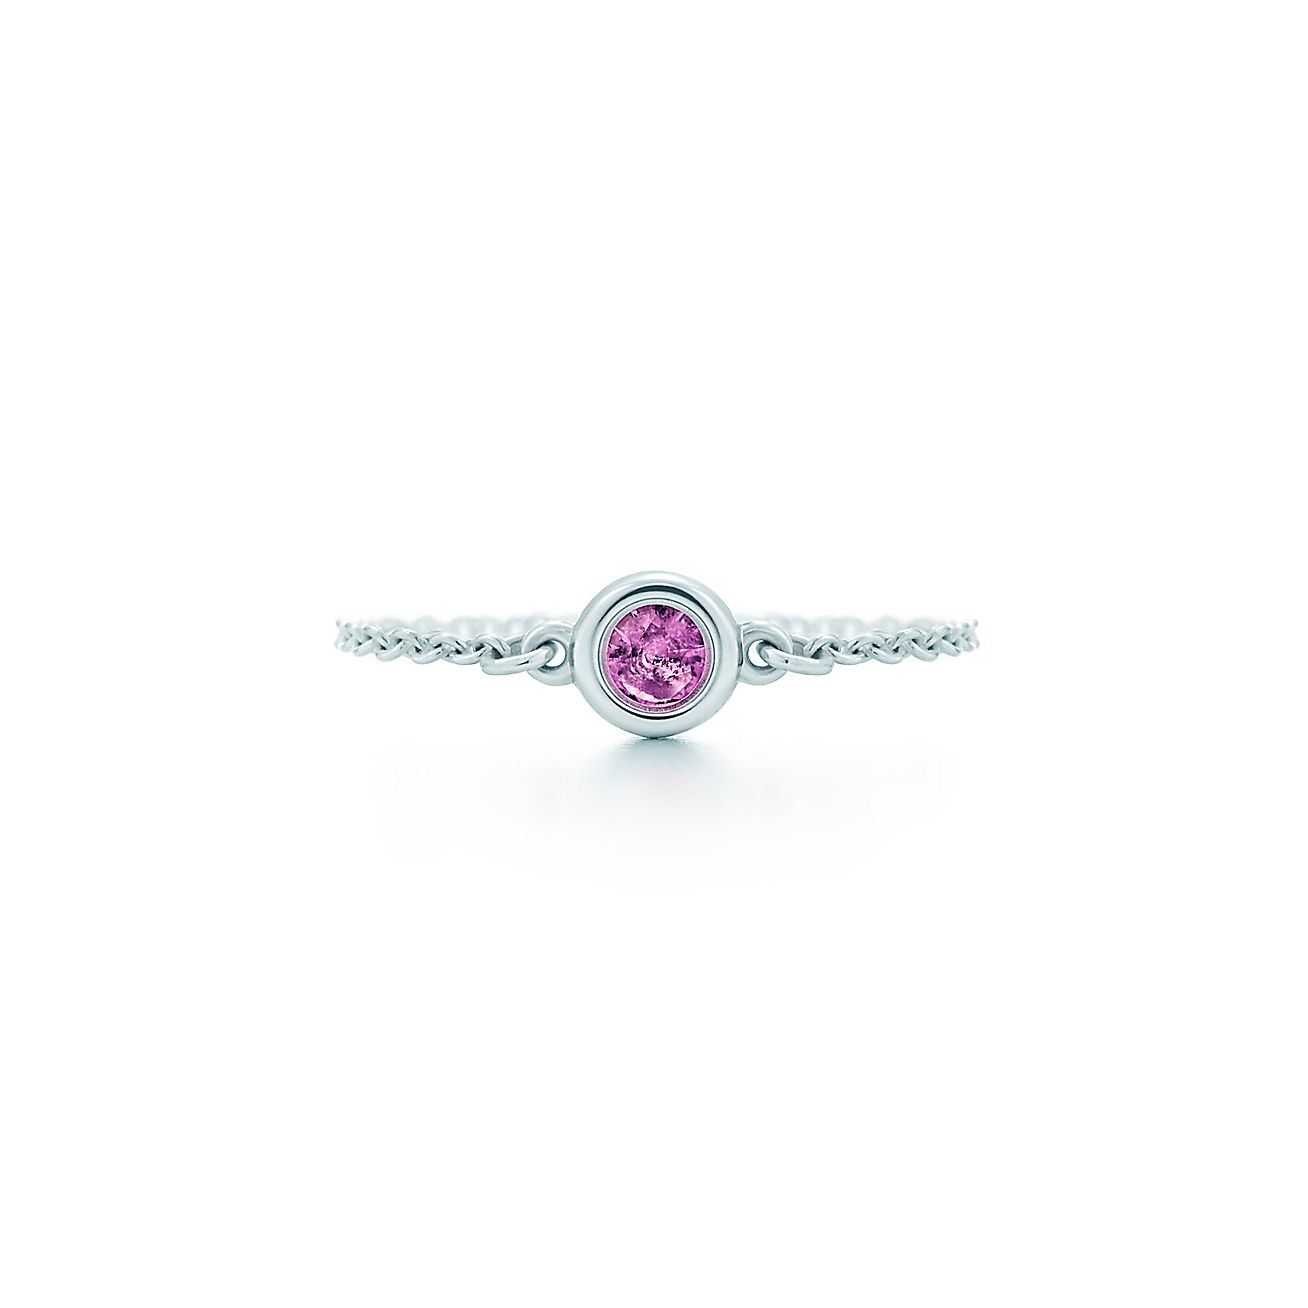 elsa peretti color by the yard ring in sterling silver with a pink sapphire tiffany co - Elsa Peretti Color By The Yard Ring